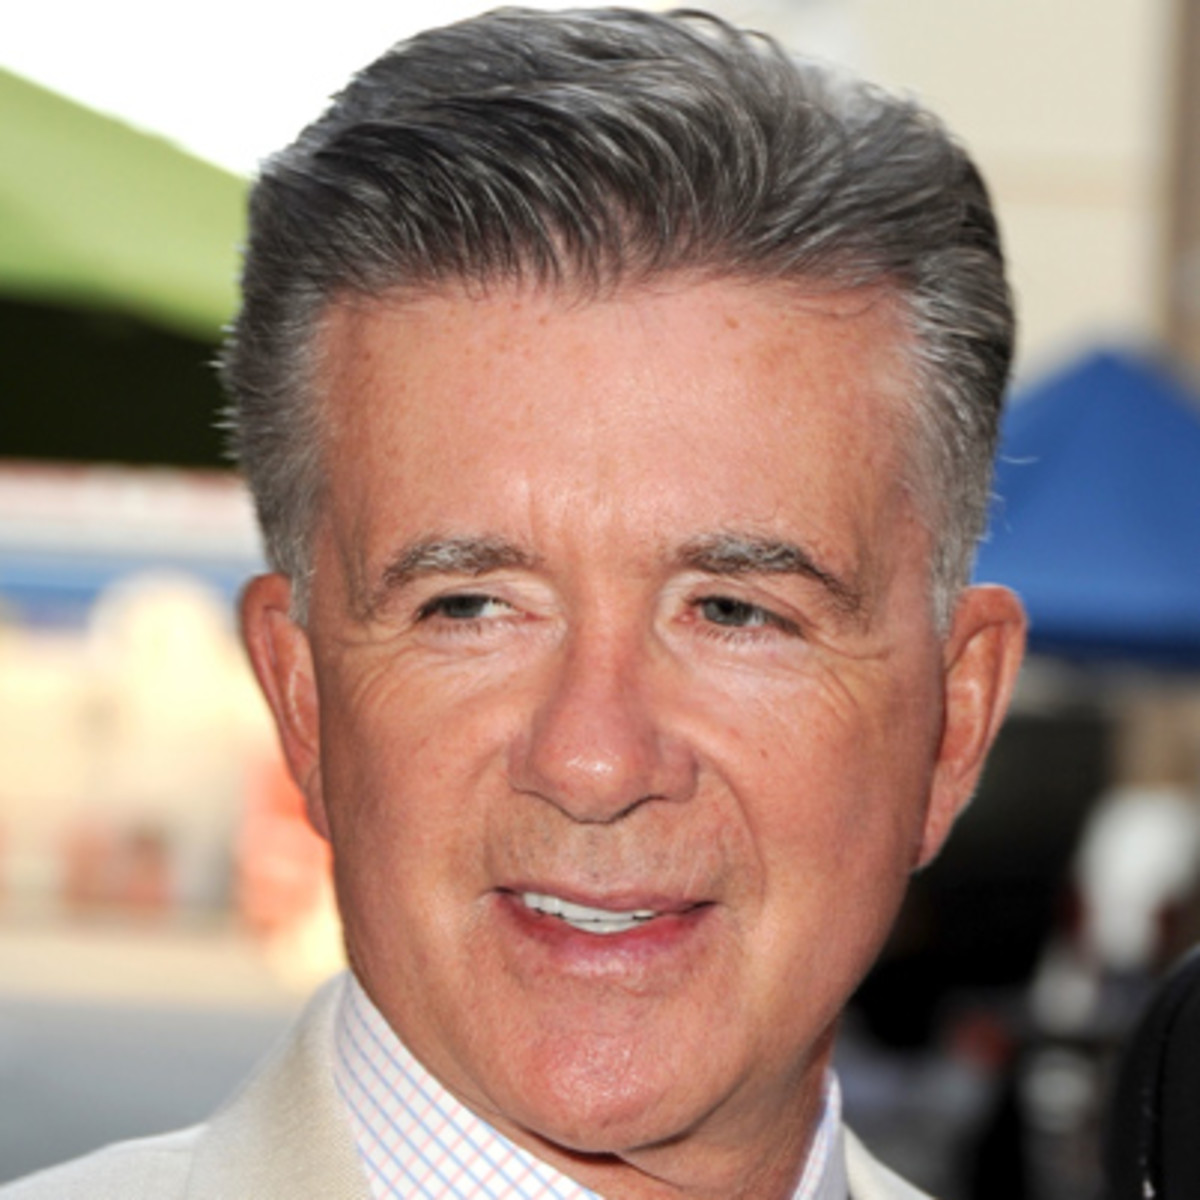 1200x1200 - Alan Thicke Wallpapers 17